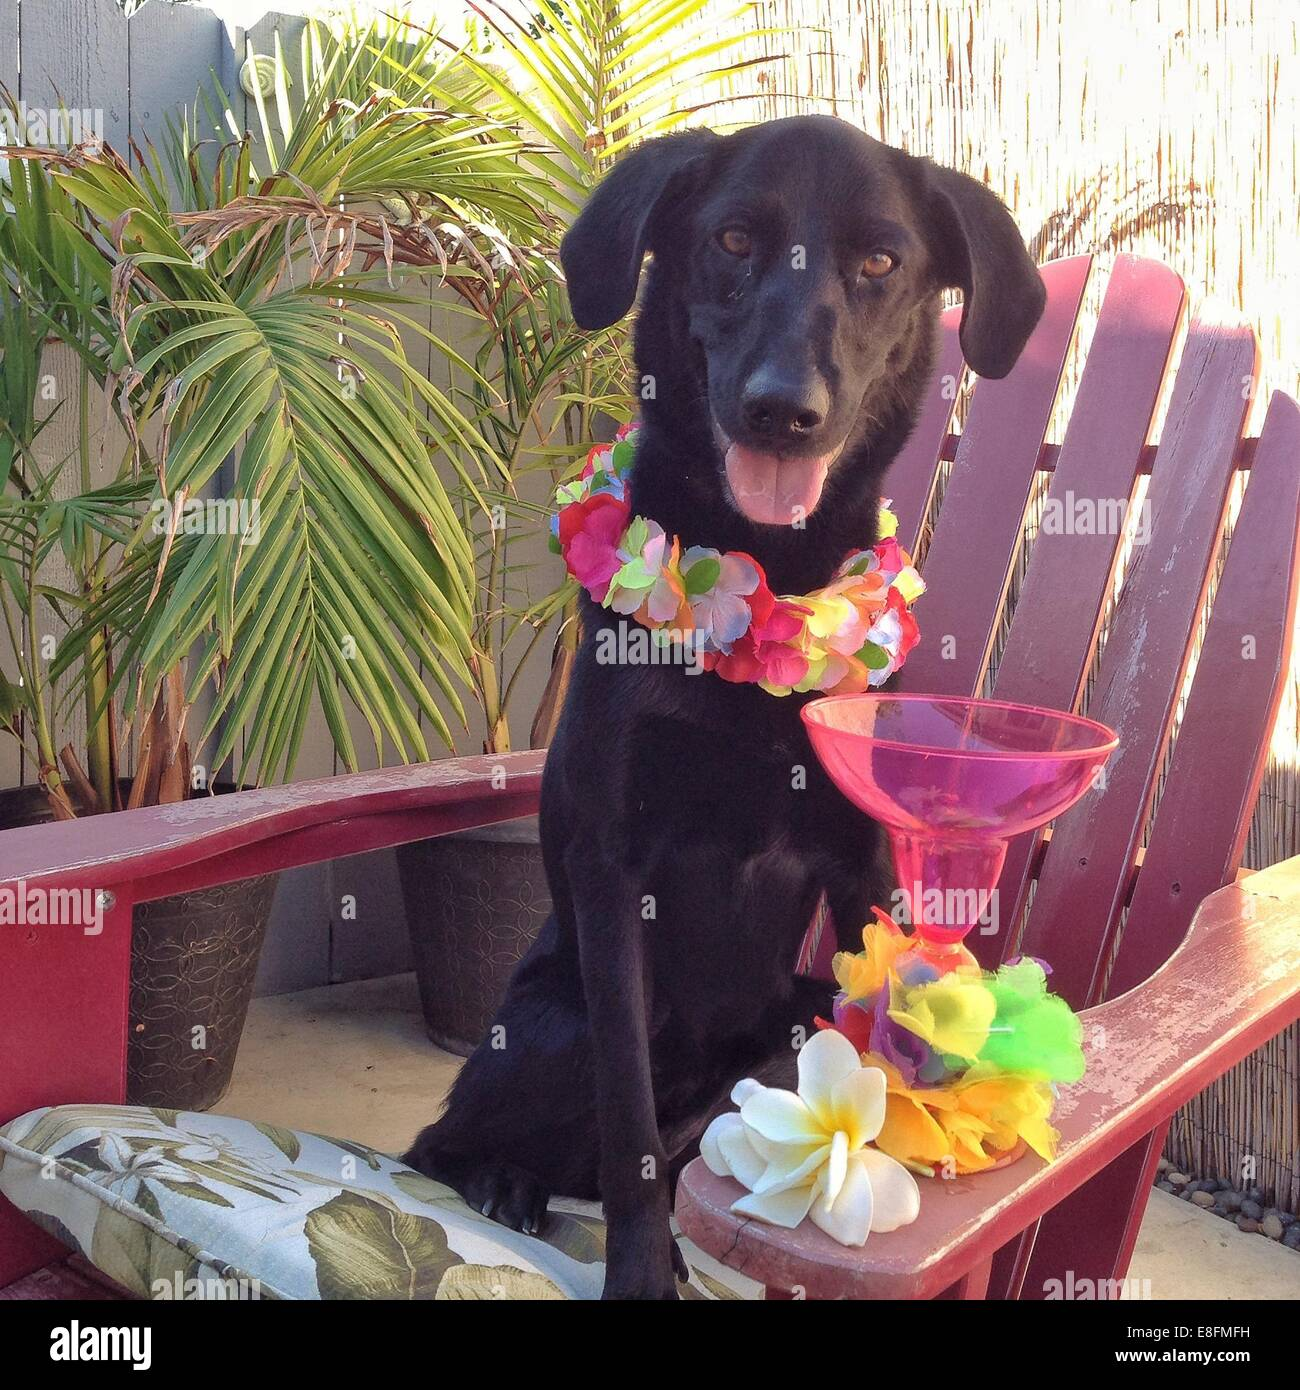 USA, California, Orange County, Portrait of dog wearing lei and Mai tai drink in front - Stock Image